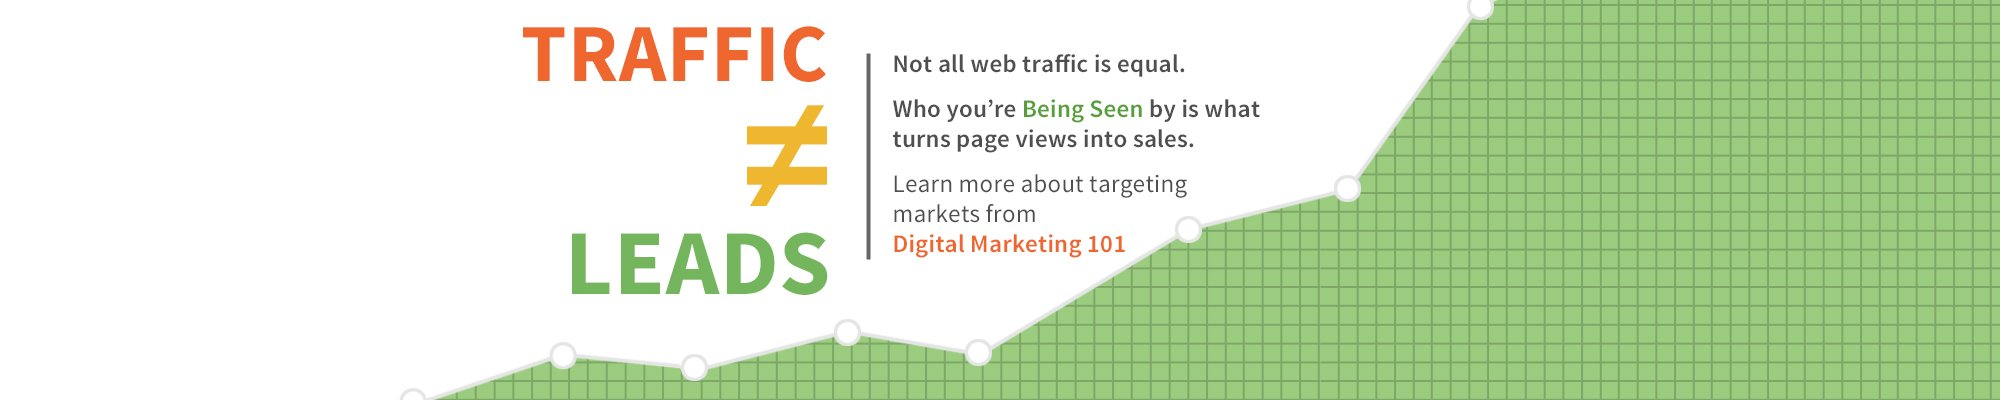 Page traffic doesn't equal leads or sales.